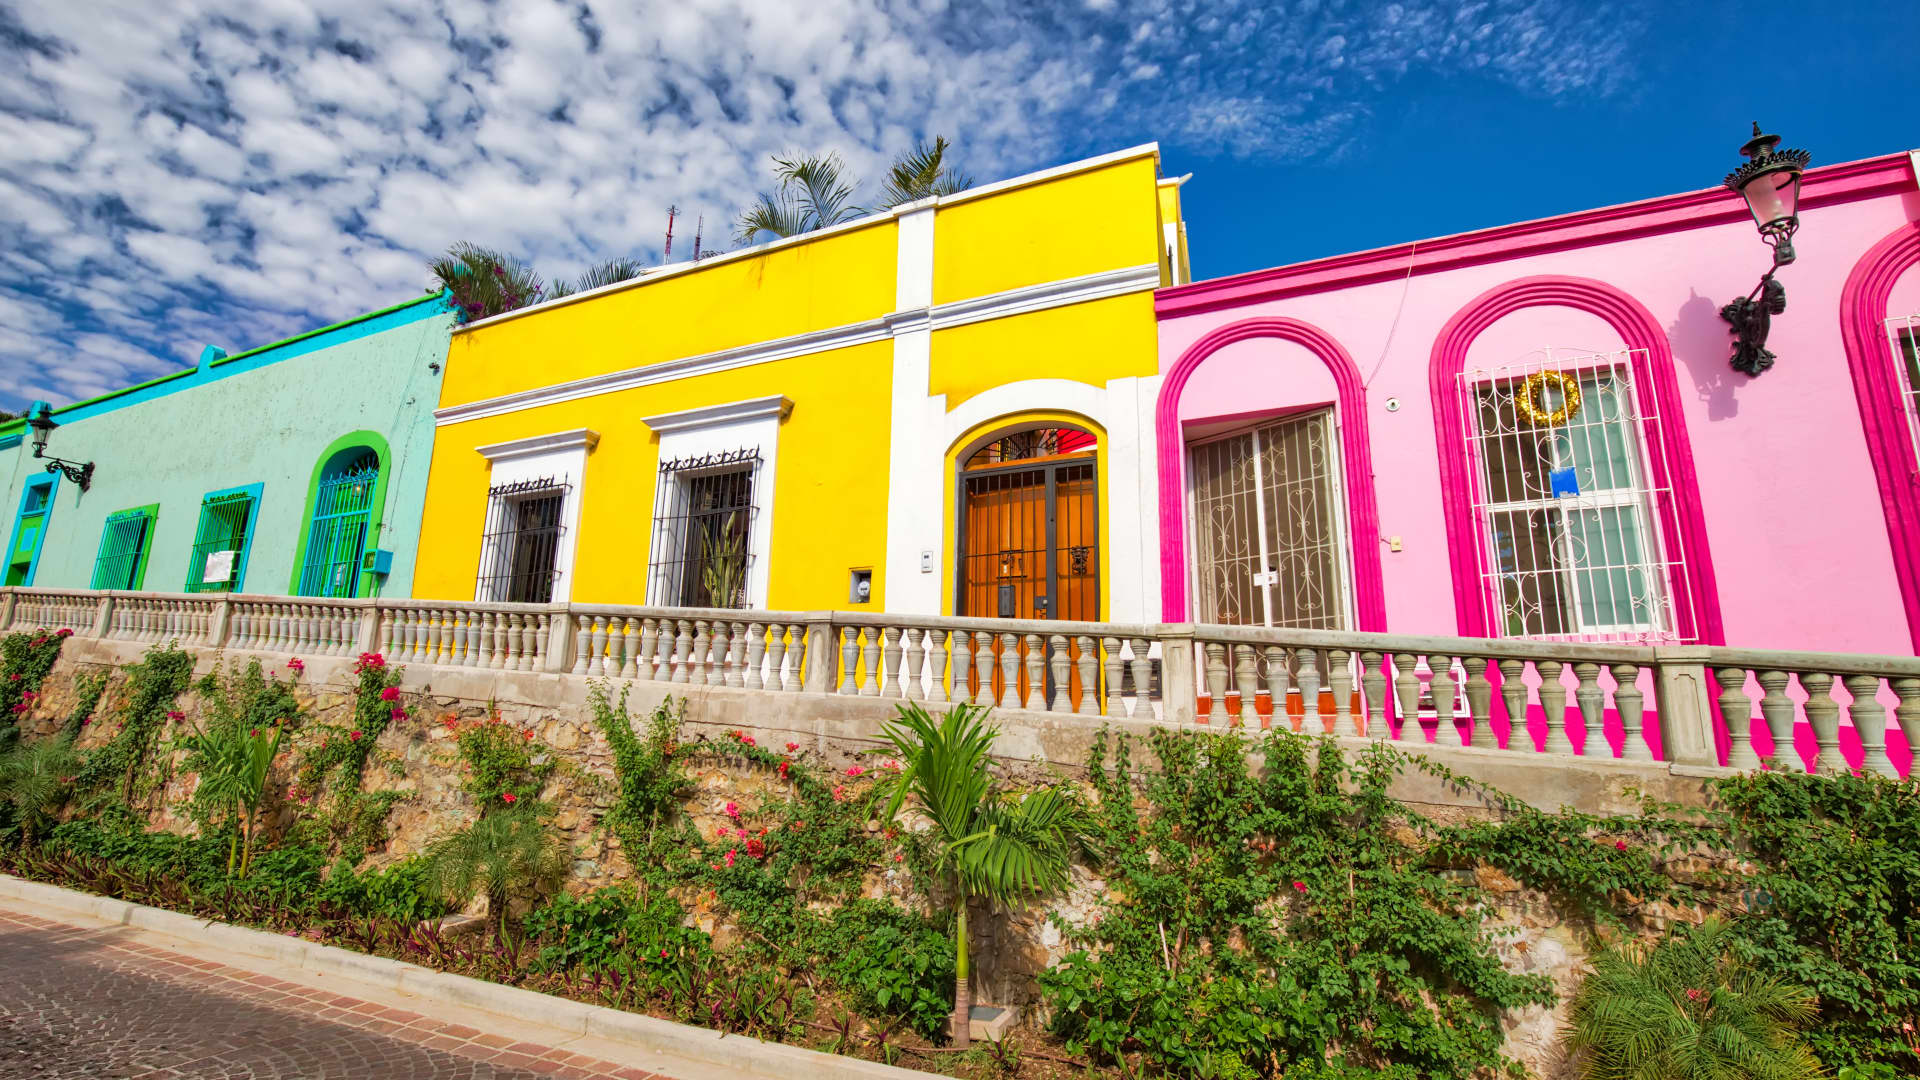 Colorful streets in historic city center of Mazatlán, Mexico